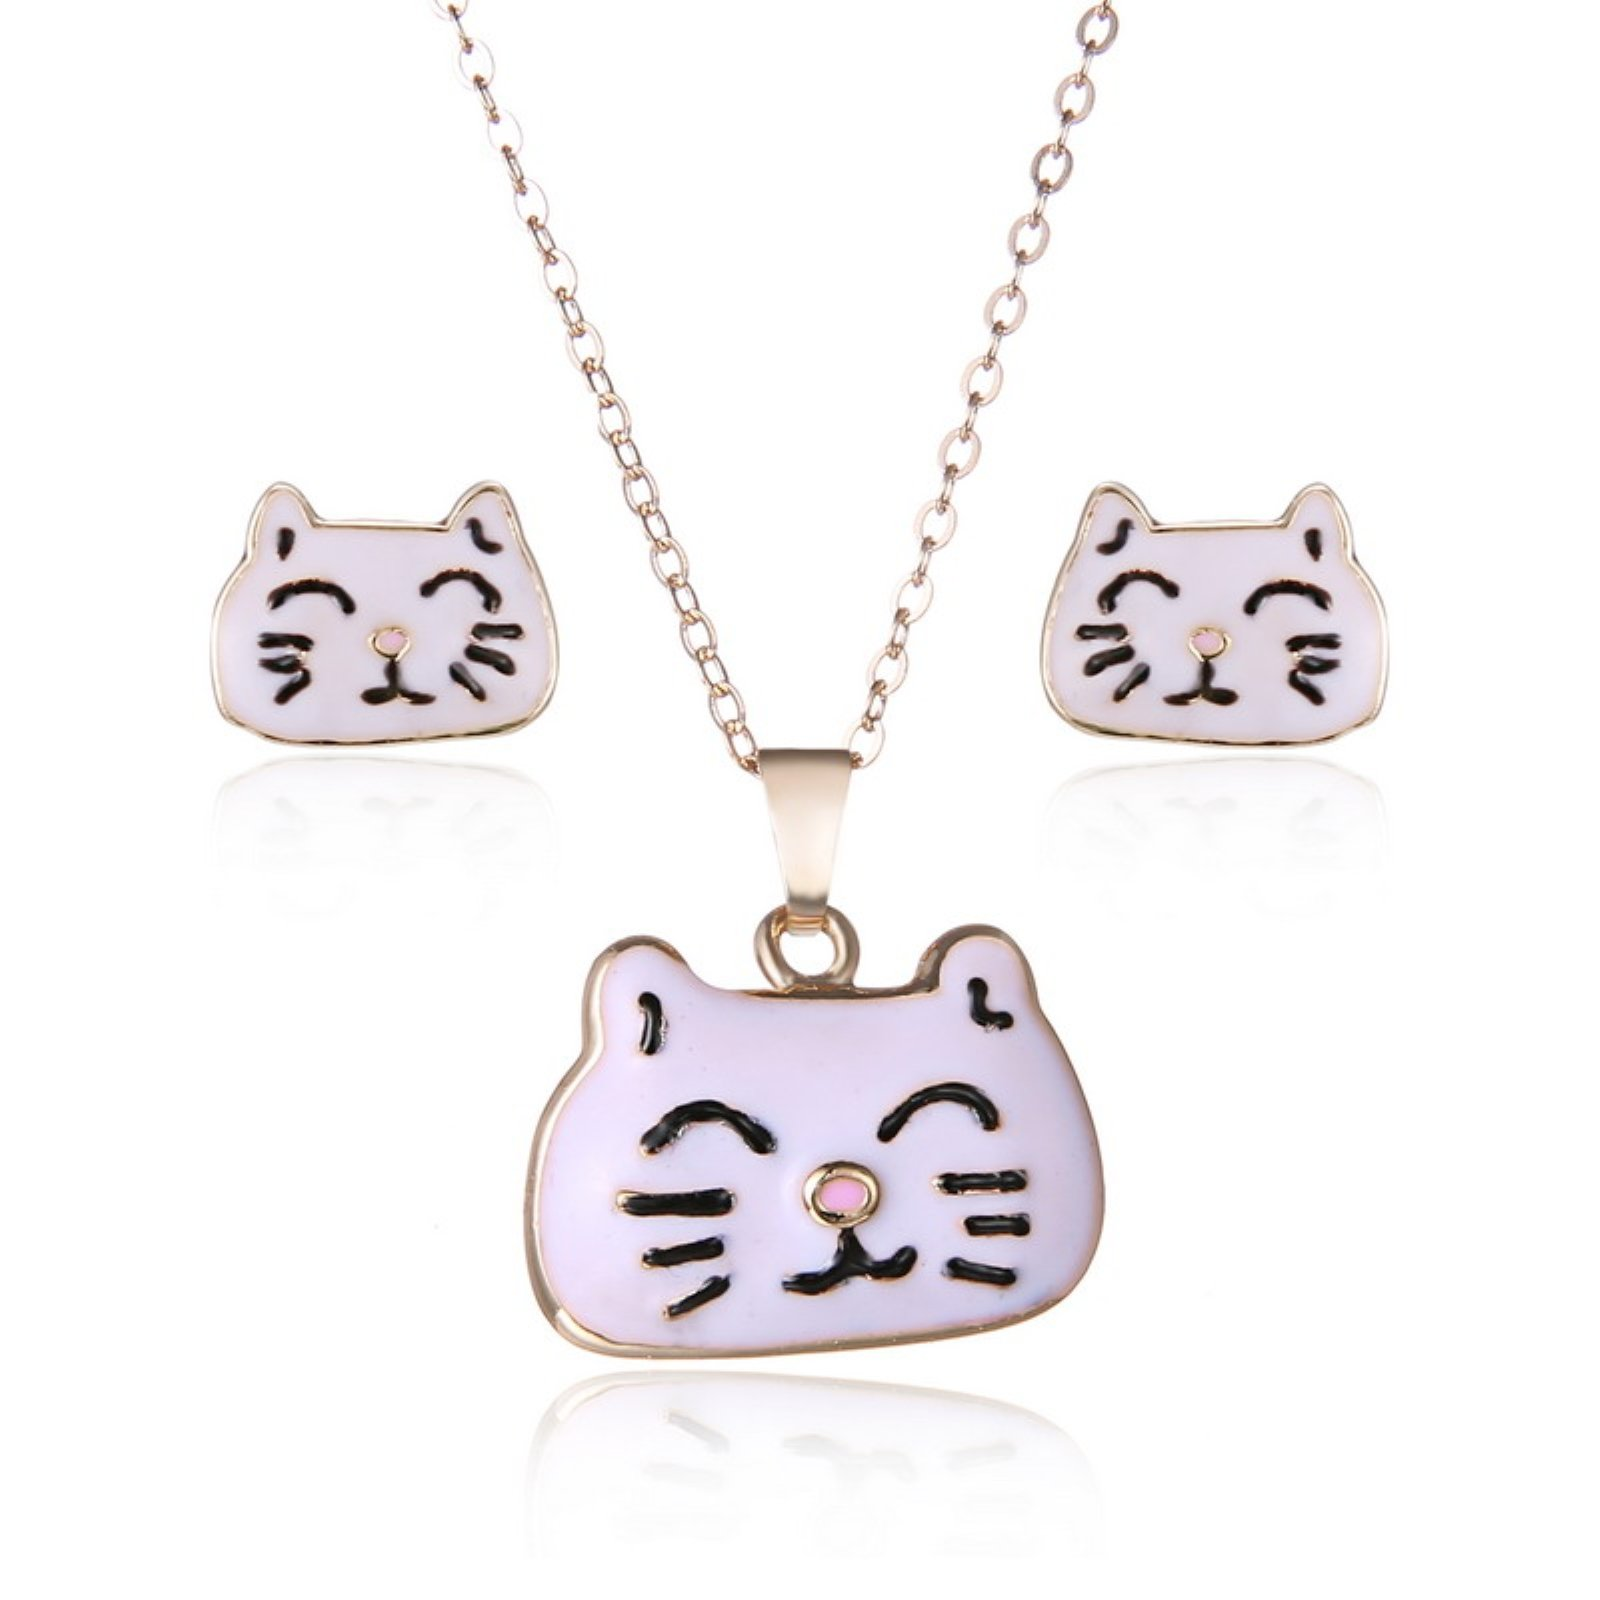 ptk12 Fashion New Animal Stud Earrings Jewelry Set for Girls Earring And Necklace Sets Wedding Jewelry